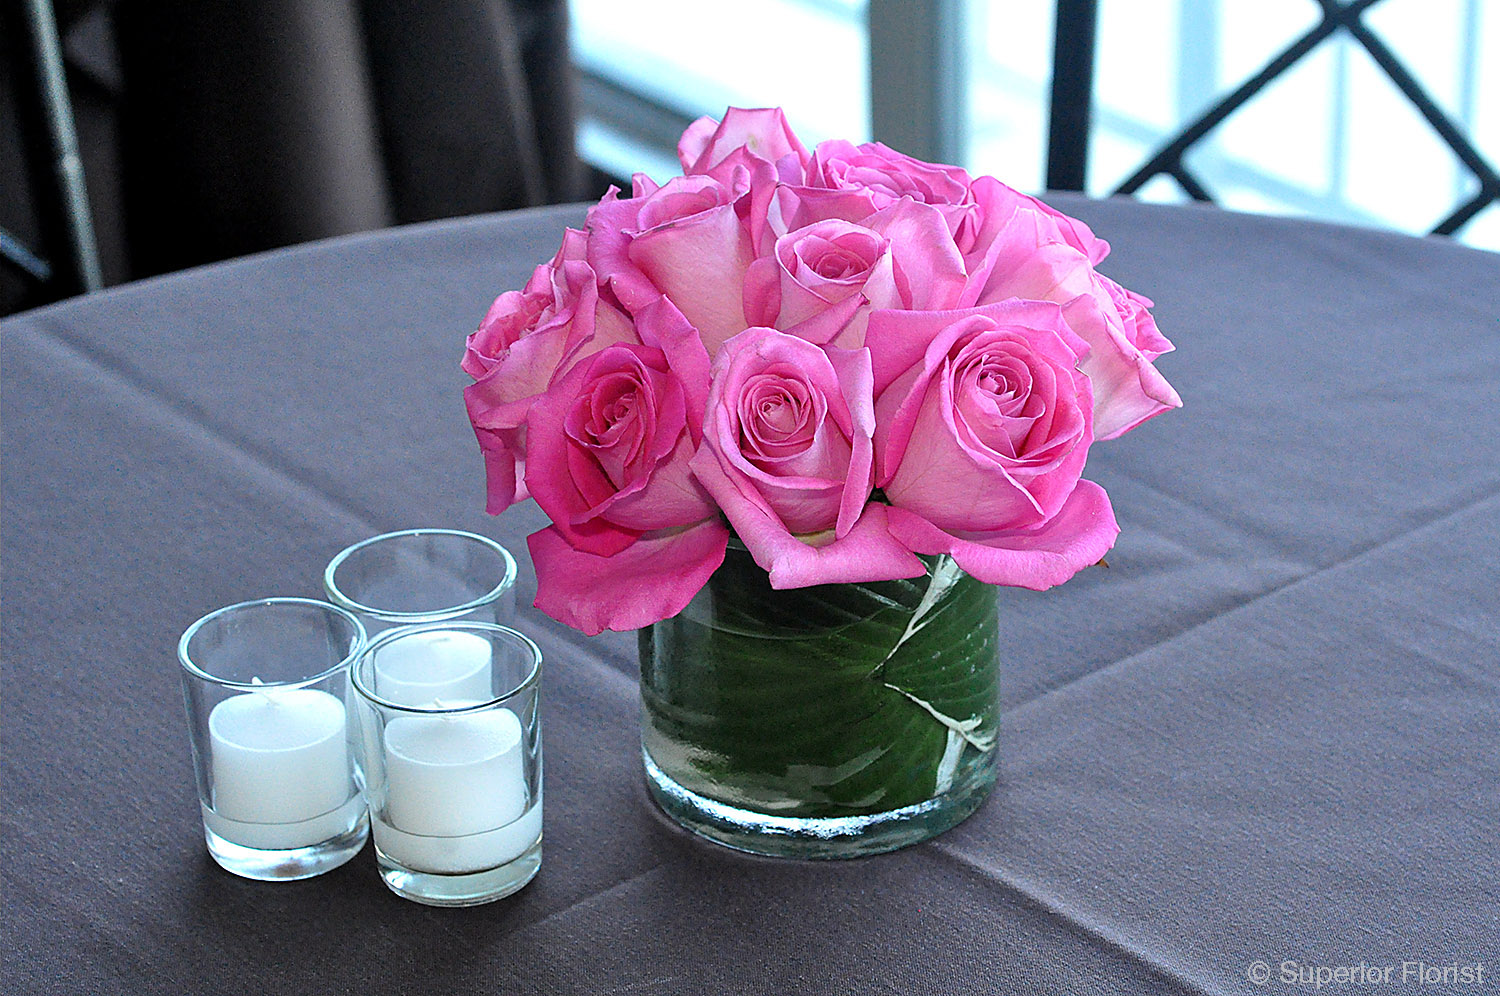 Superior Florist – Cocktail Tables: A simple cocktail table floral arrangement of pink roses in a small, cylindrical glass vase. Leaf wrap lining inside of vase.